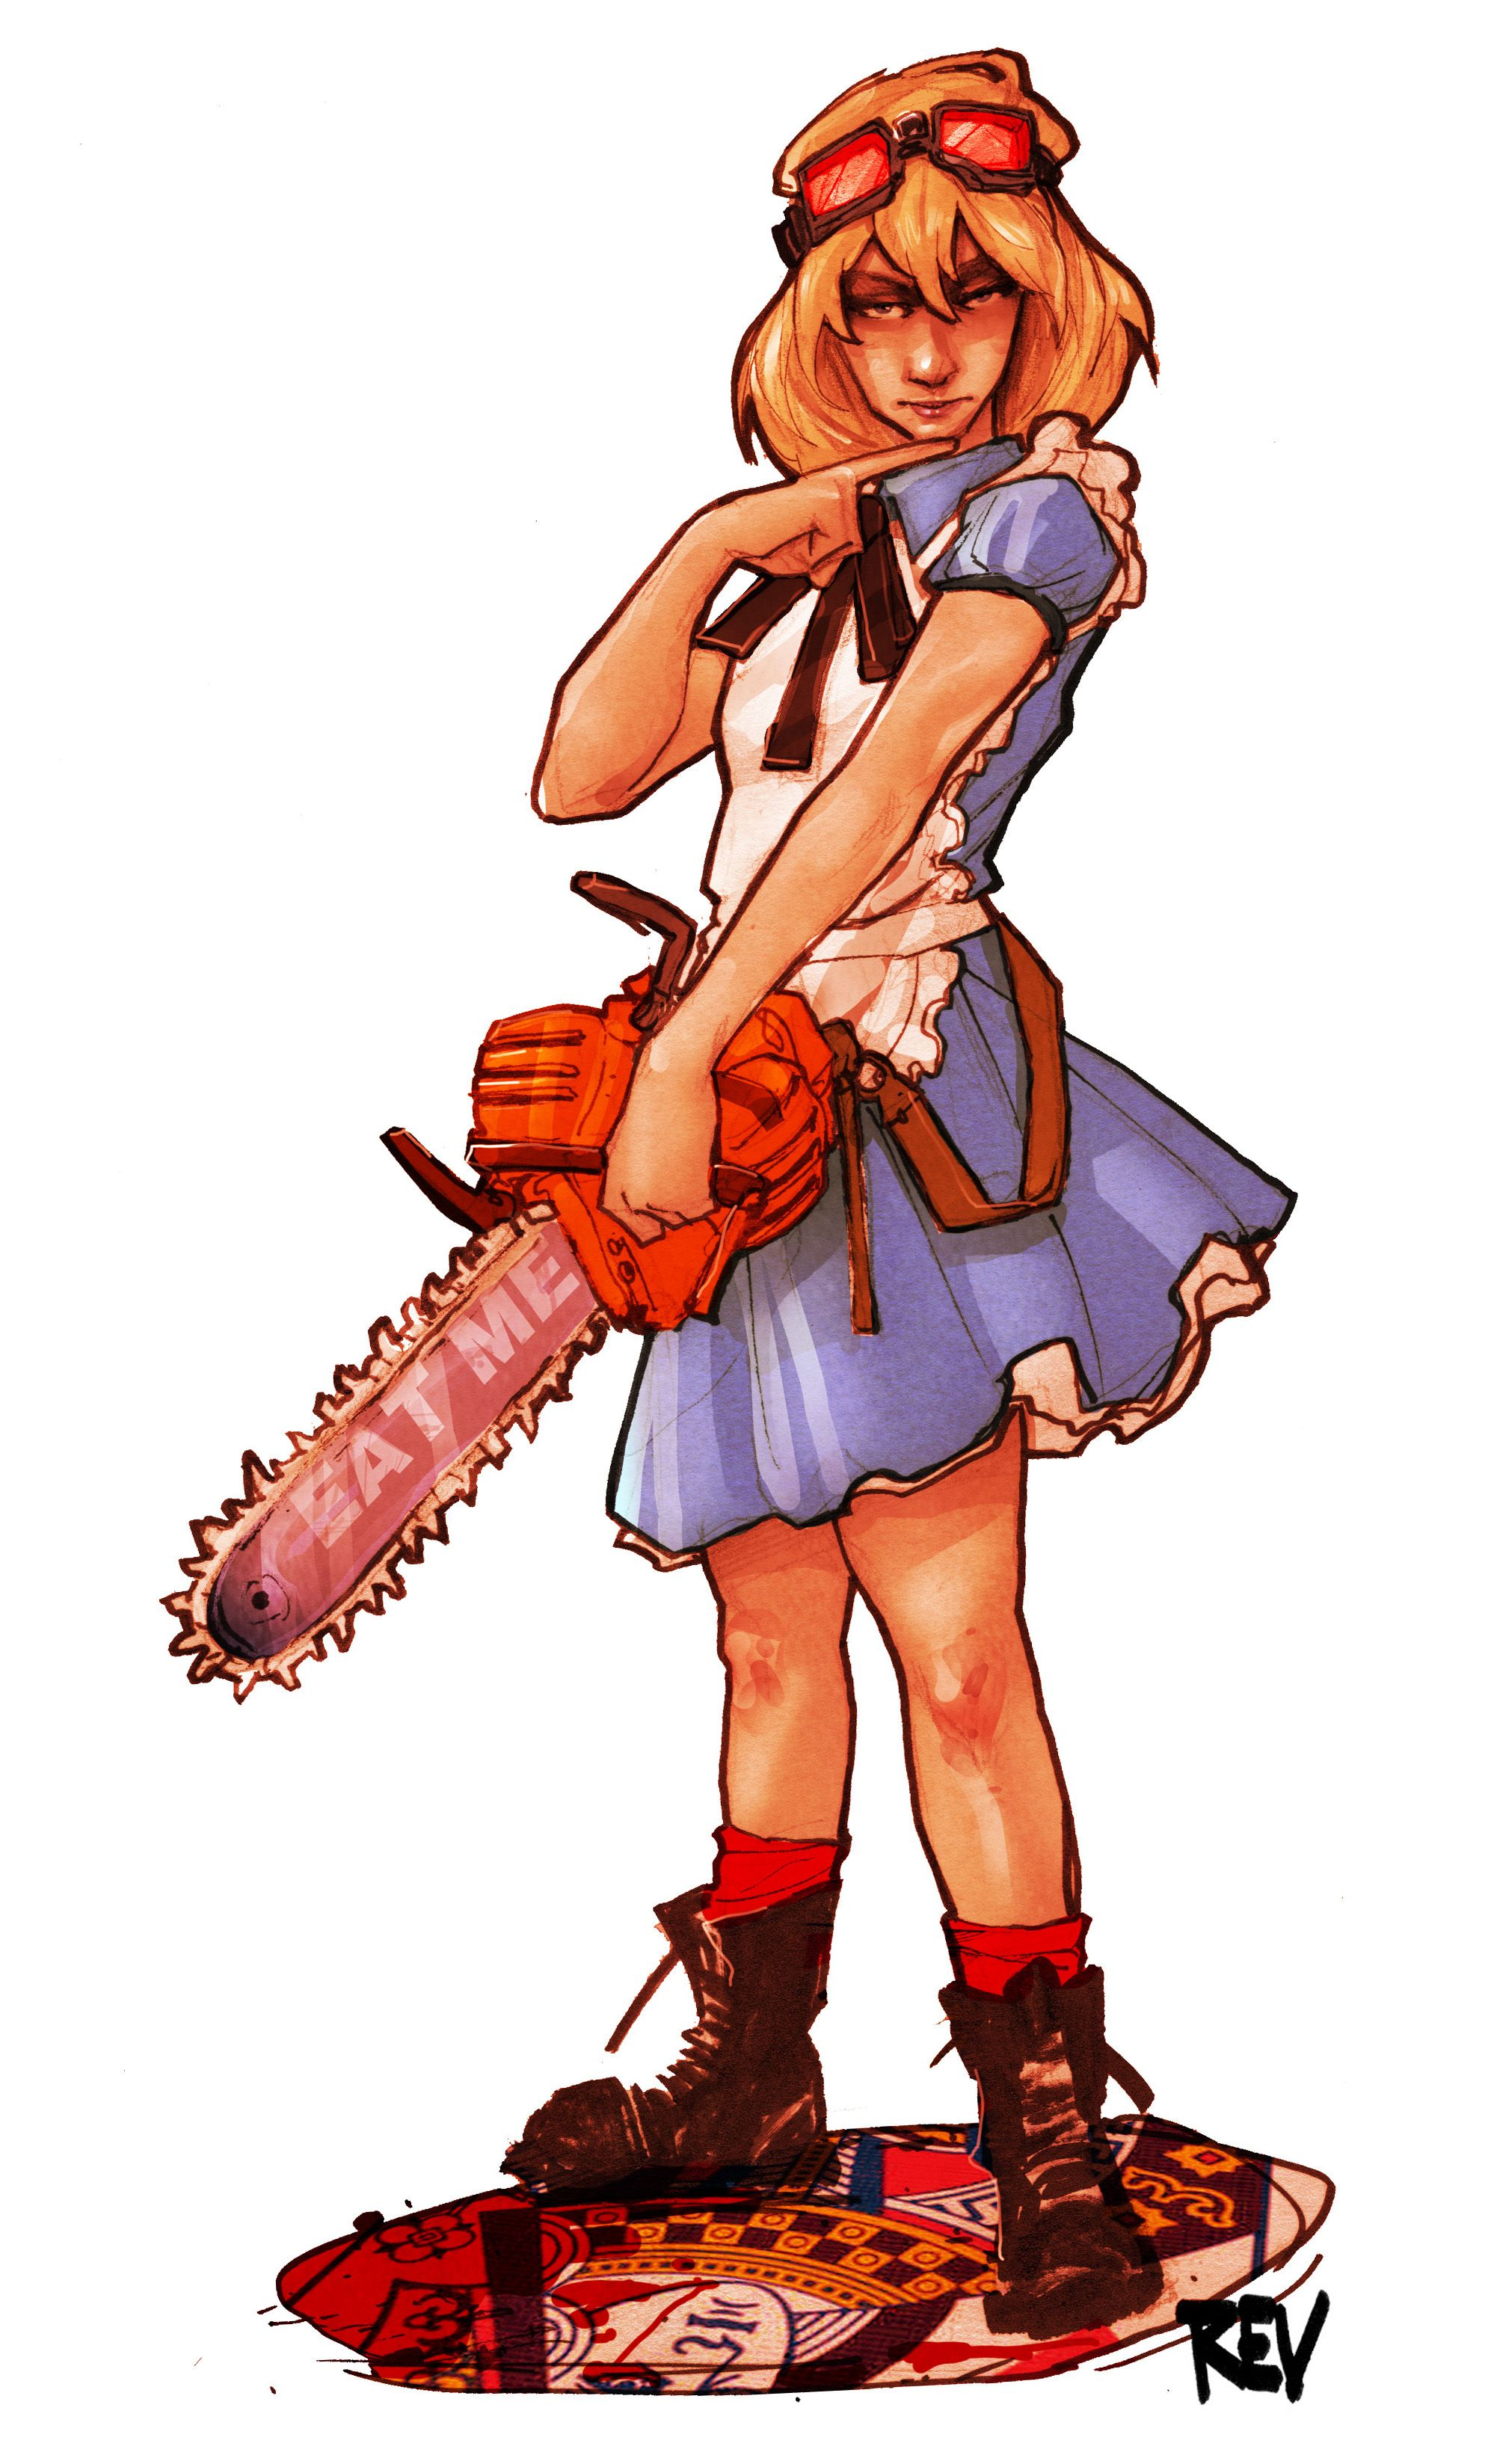 commissioned artwork of chainsaw alice in wonderland by rupert